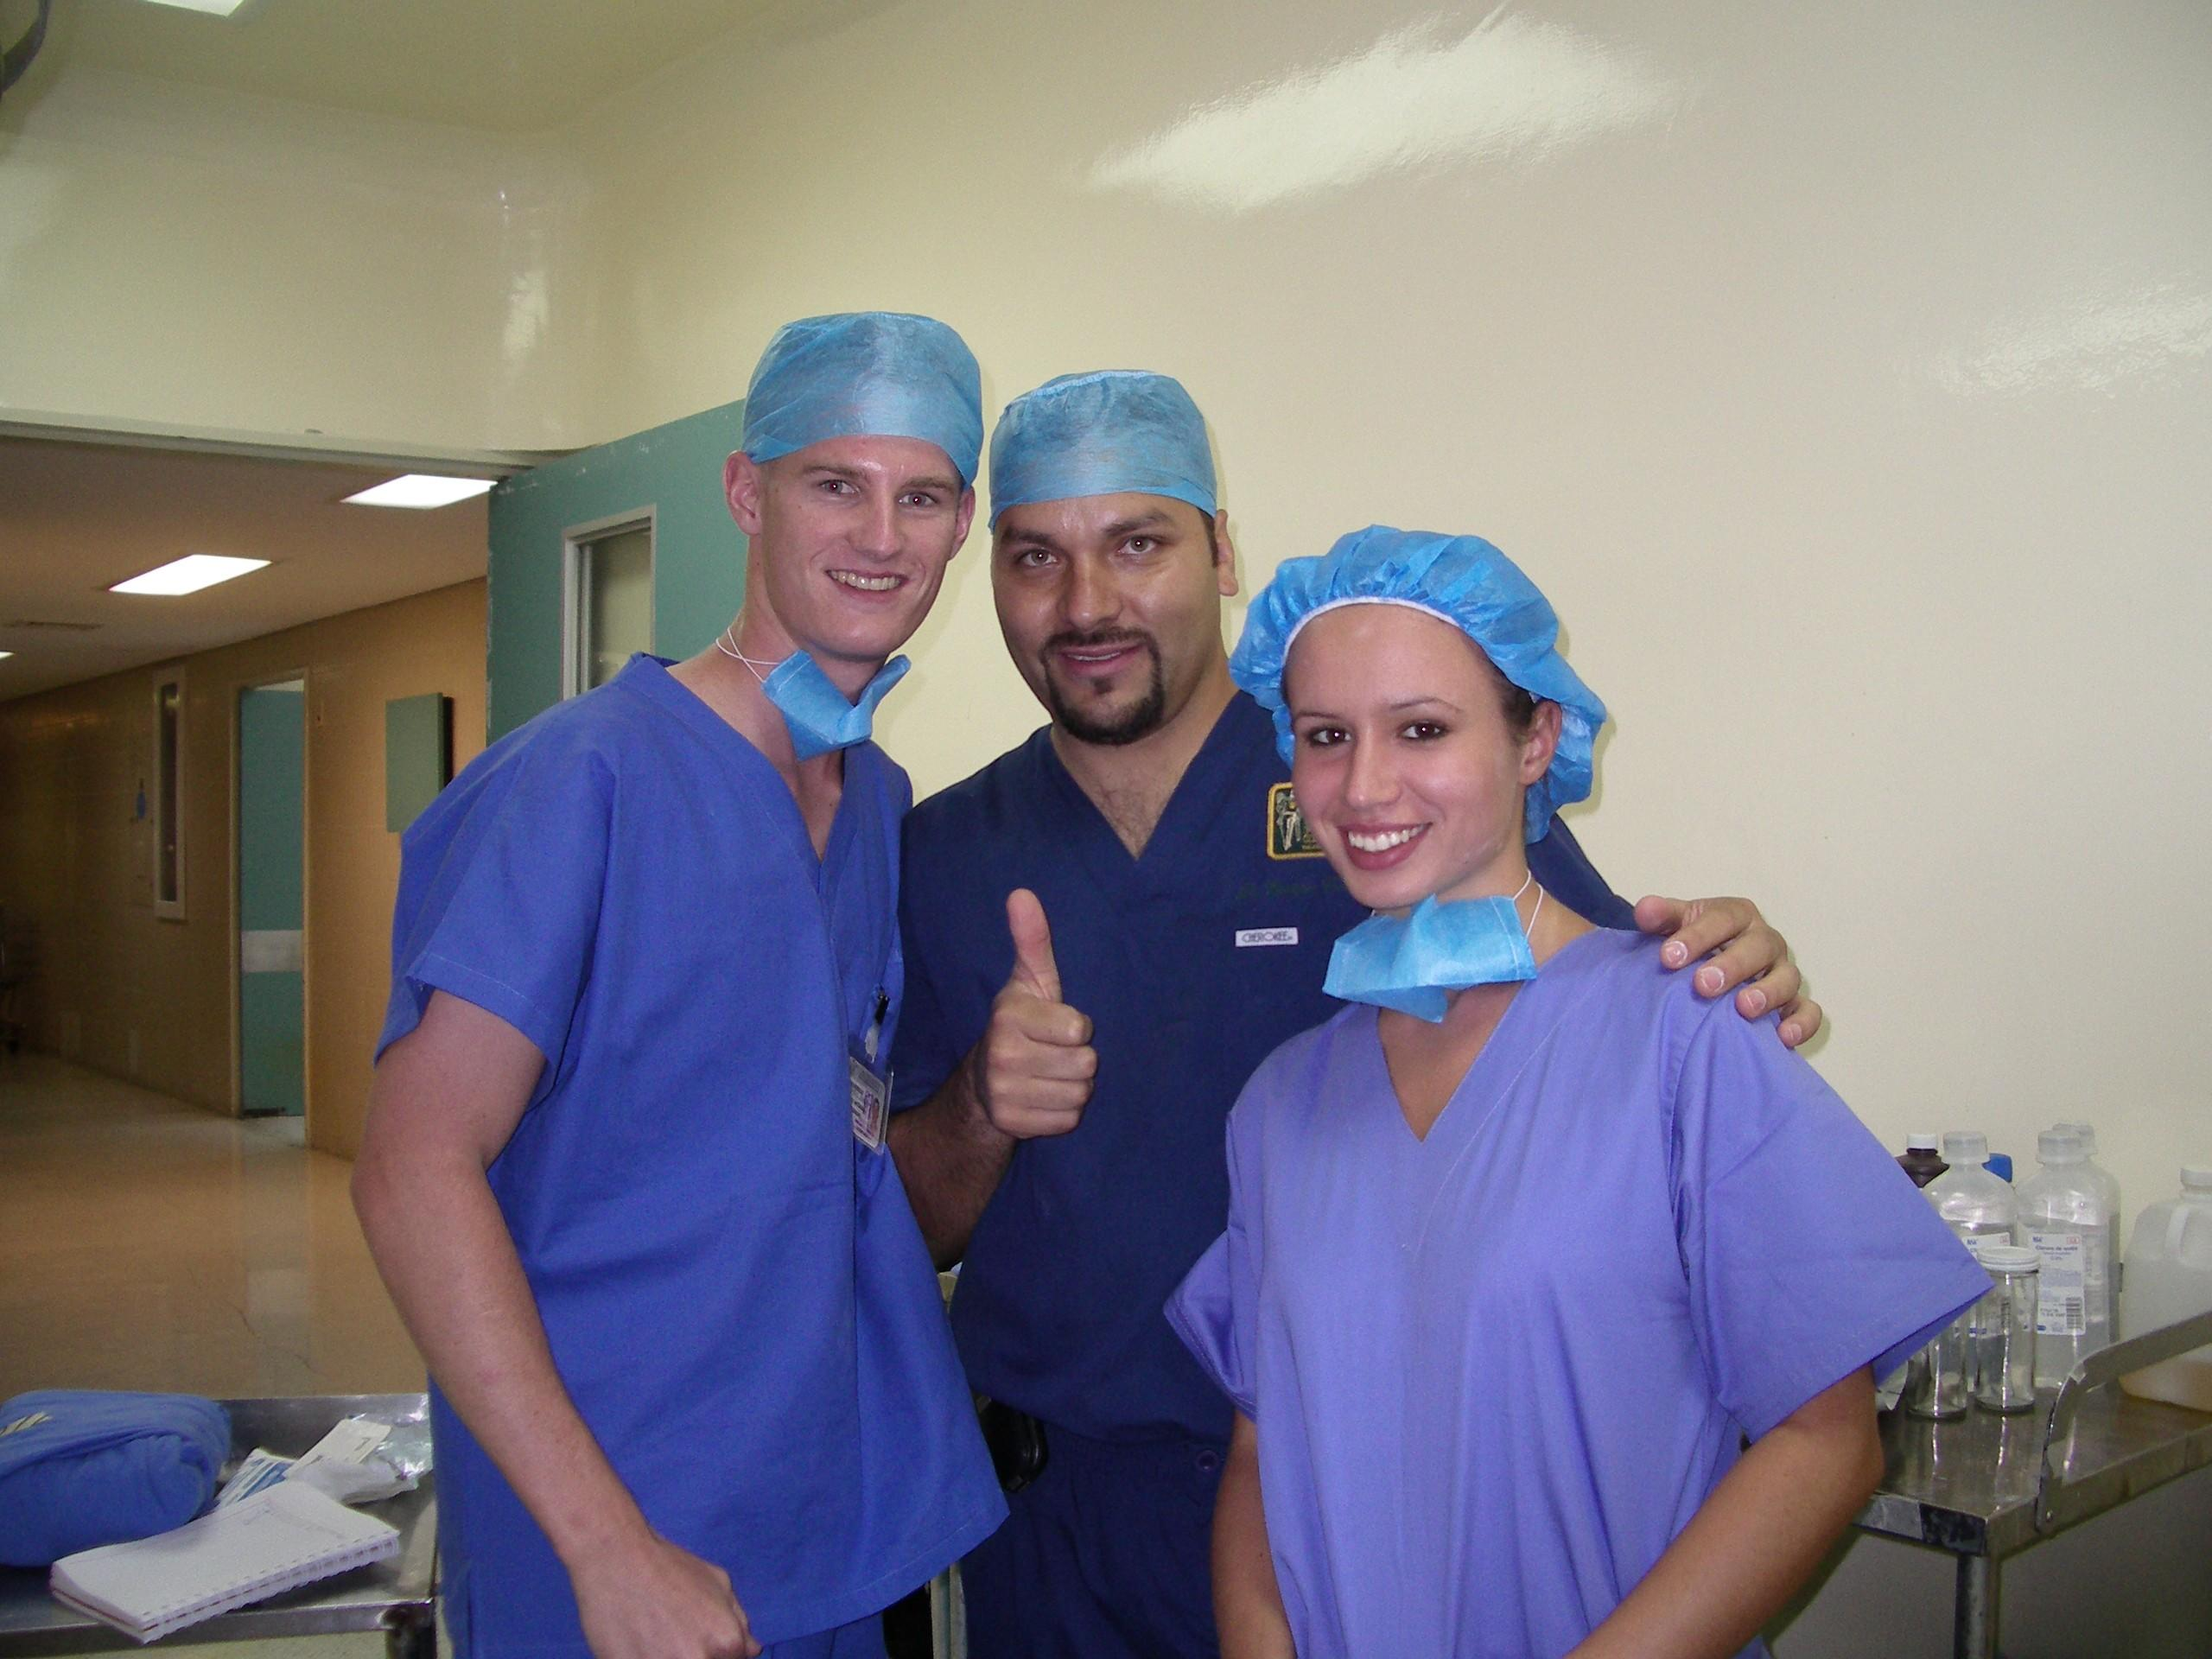 Medical Interns pose for a picture with a local doctor in a Hospital during their work placement in Mexico.